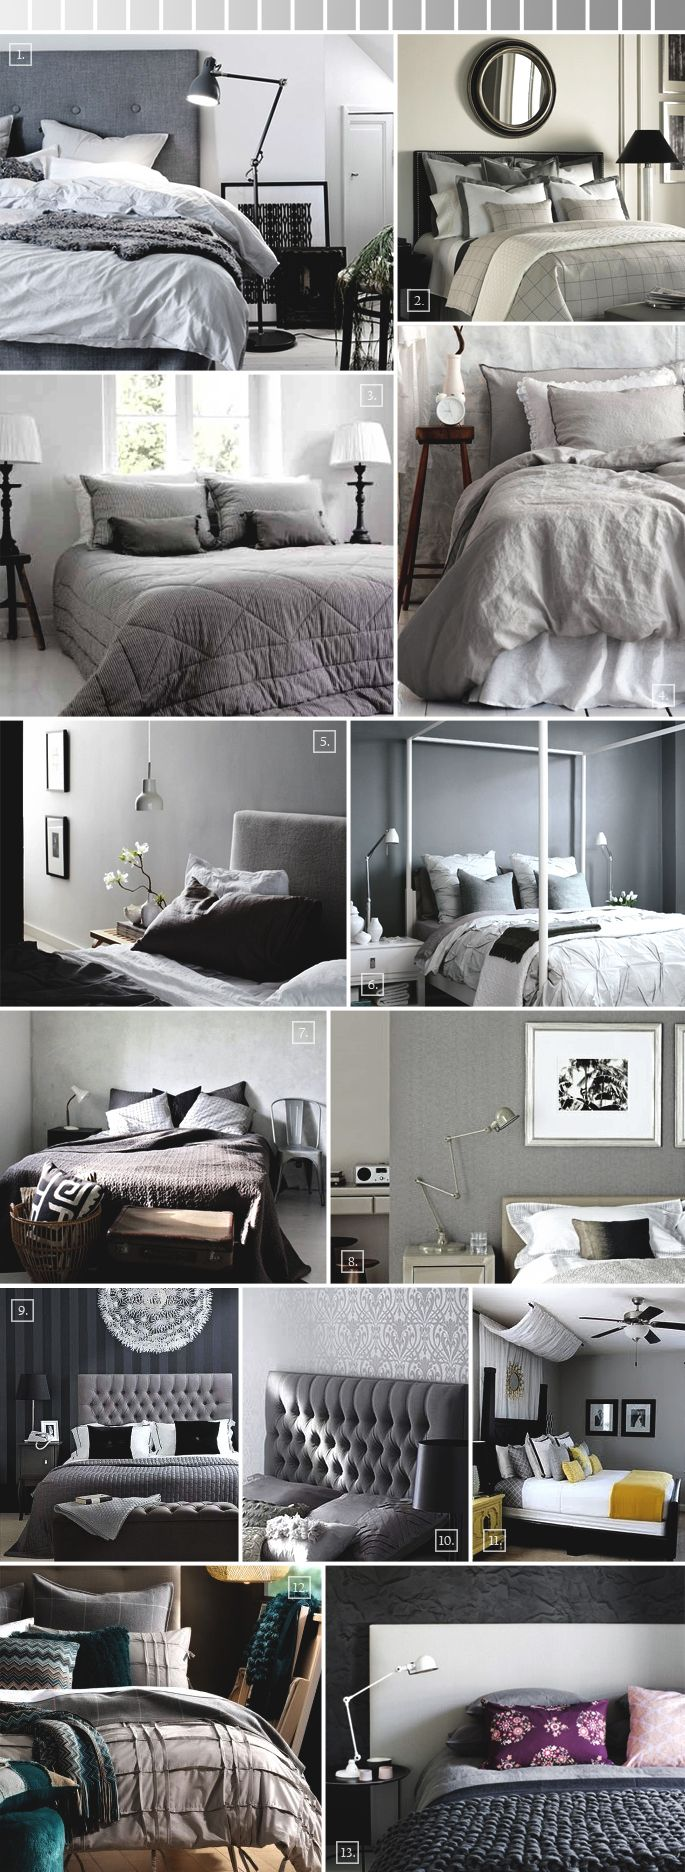 Grey Bedroom Ideas, Decorating Tips, and Design Pictures | Home Tree Atlas